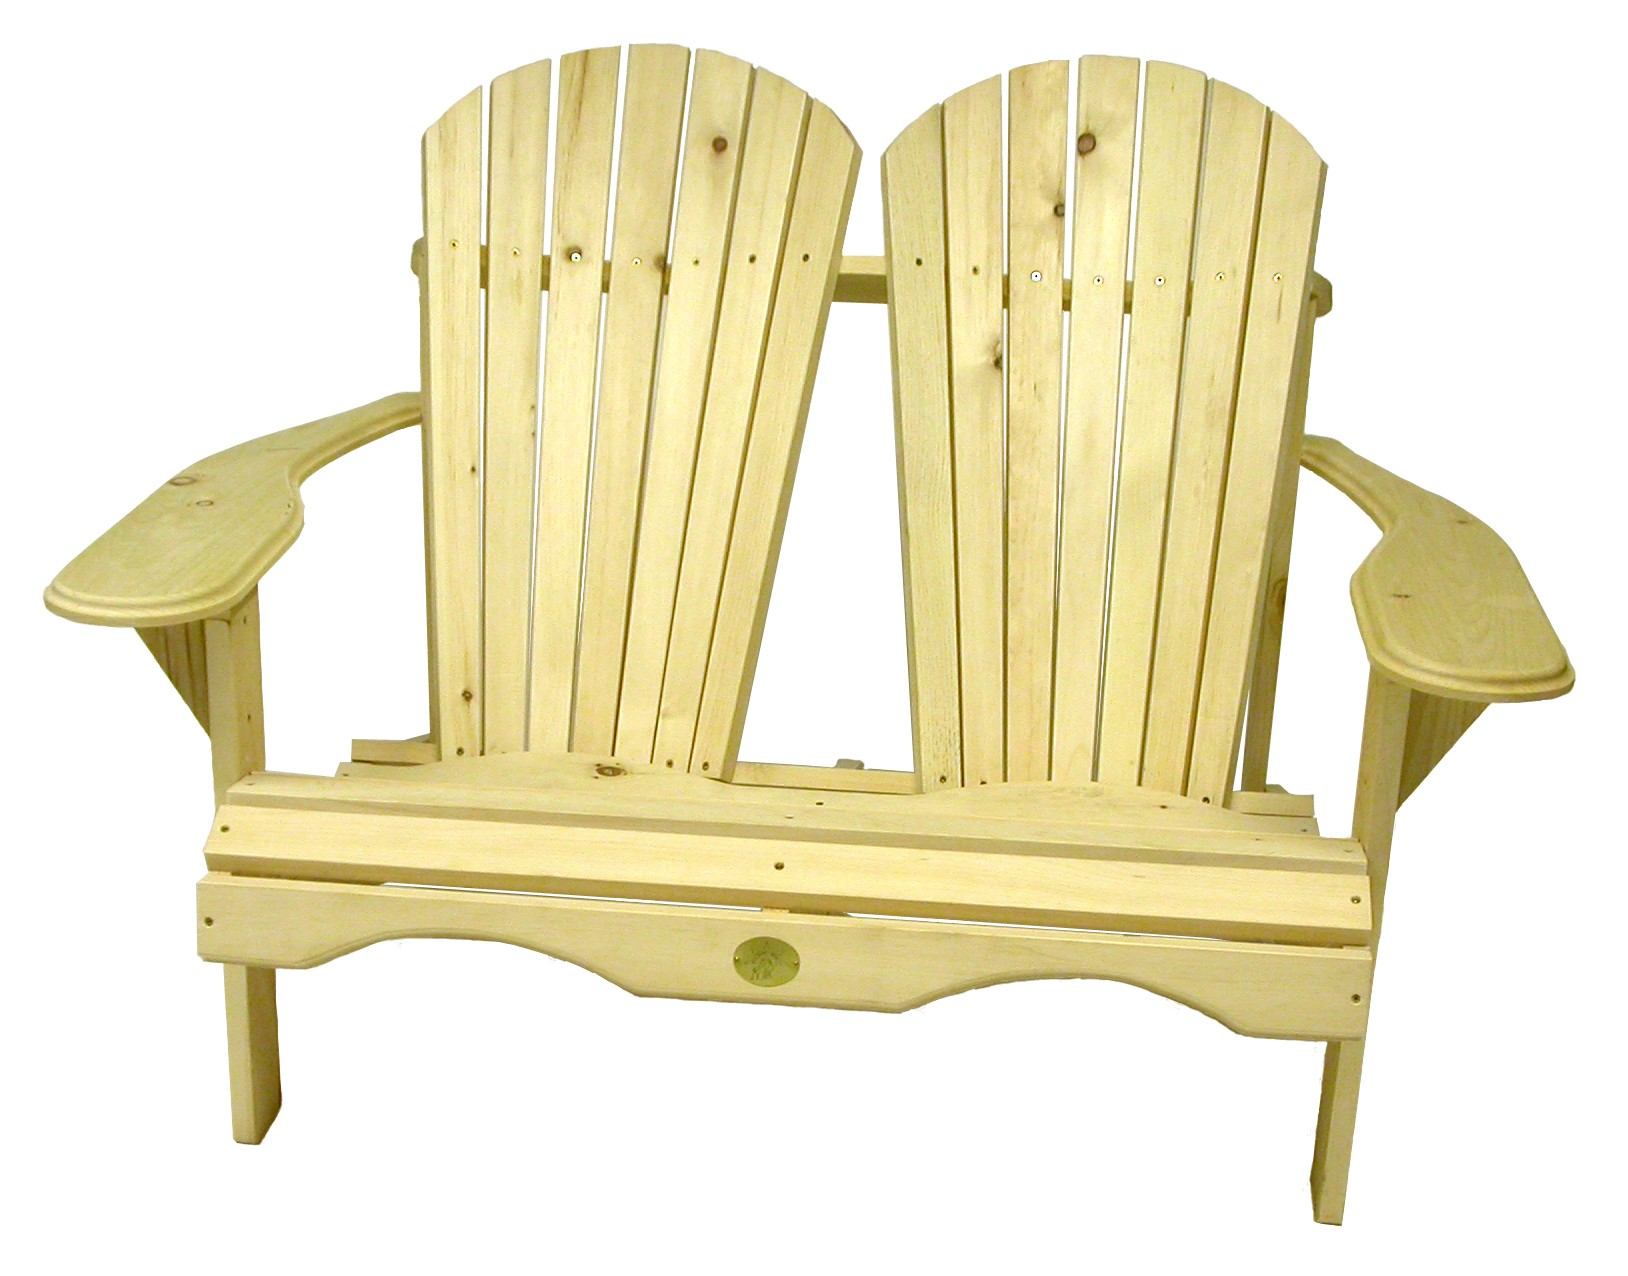 Rustic Natural Cedar Furniture Outdoor Loveseat Walmart Com